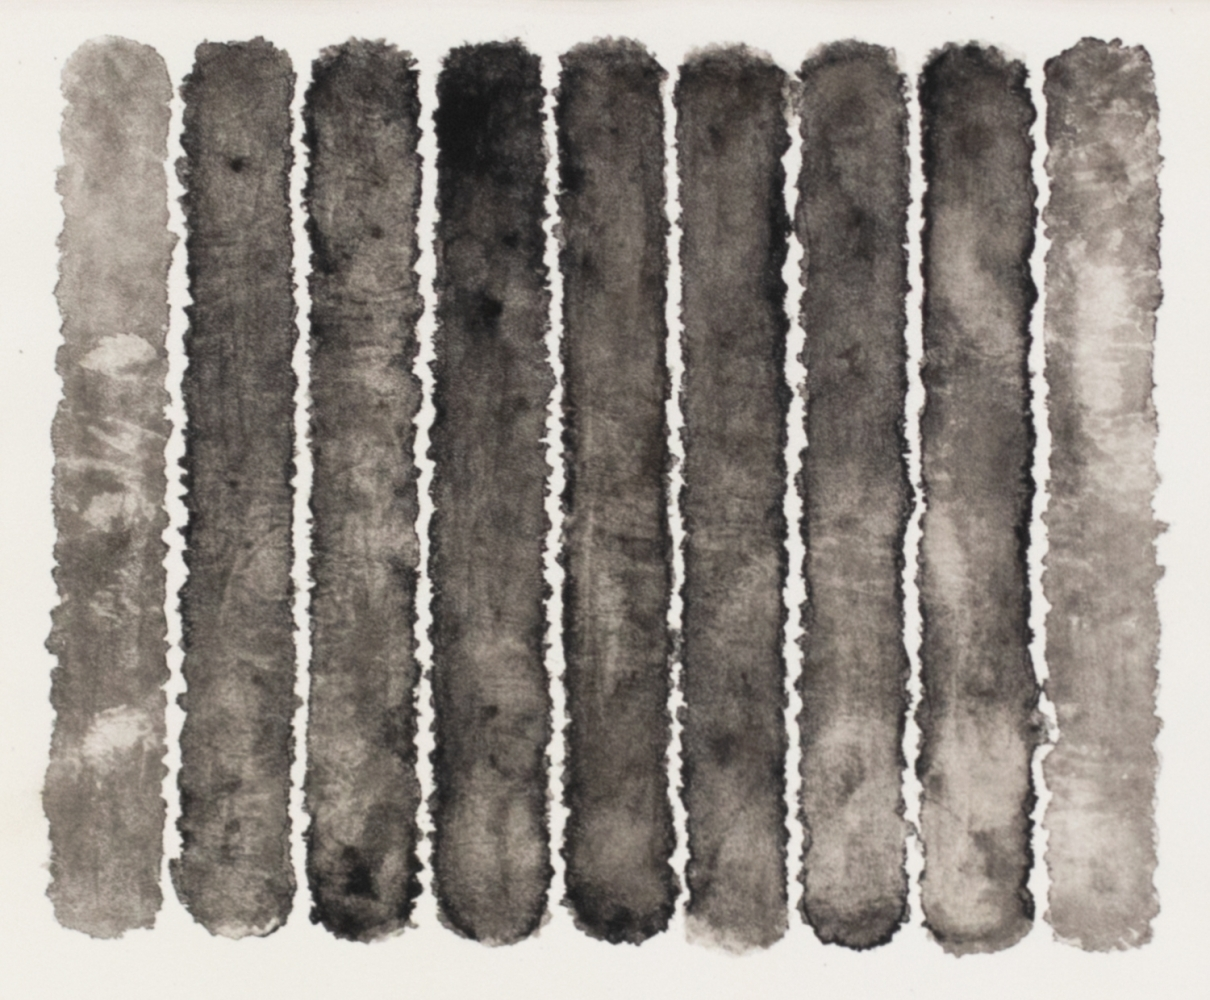 J. Steven Manolis, Molecules (Black & White), 2008, watercolor, 18 x 20 inches, Abstract expressionism art, Black and White Abstract painting